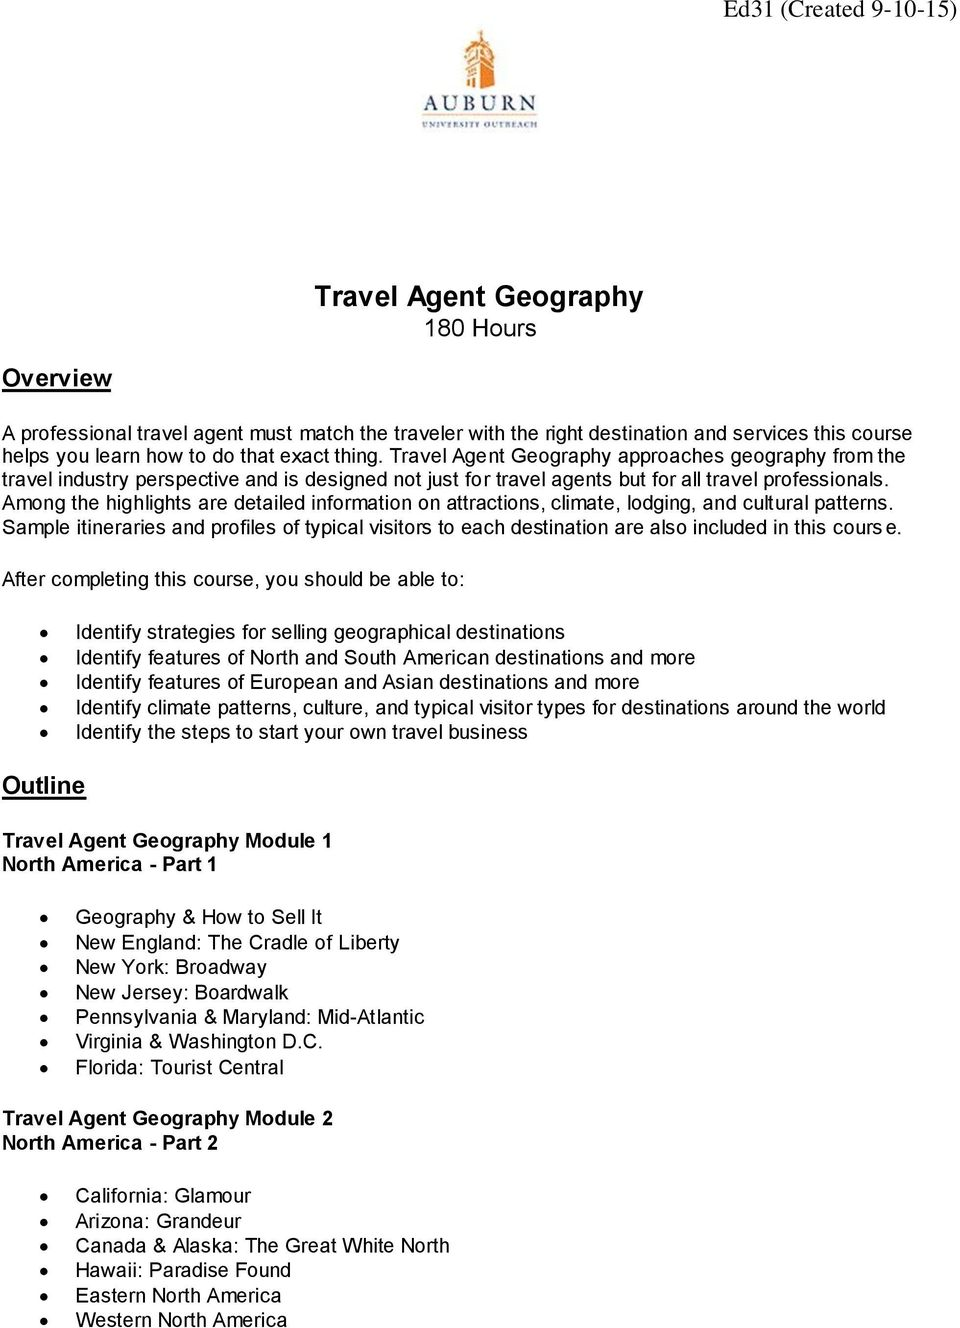 Starting A Travel Agency Business In Canada - Best Agency In